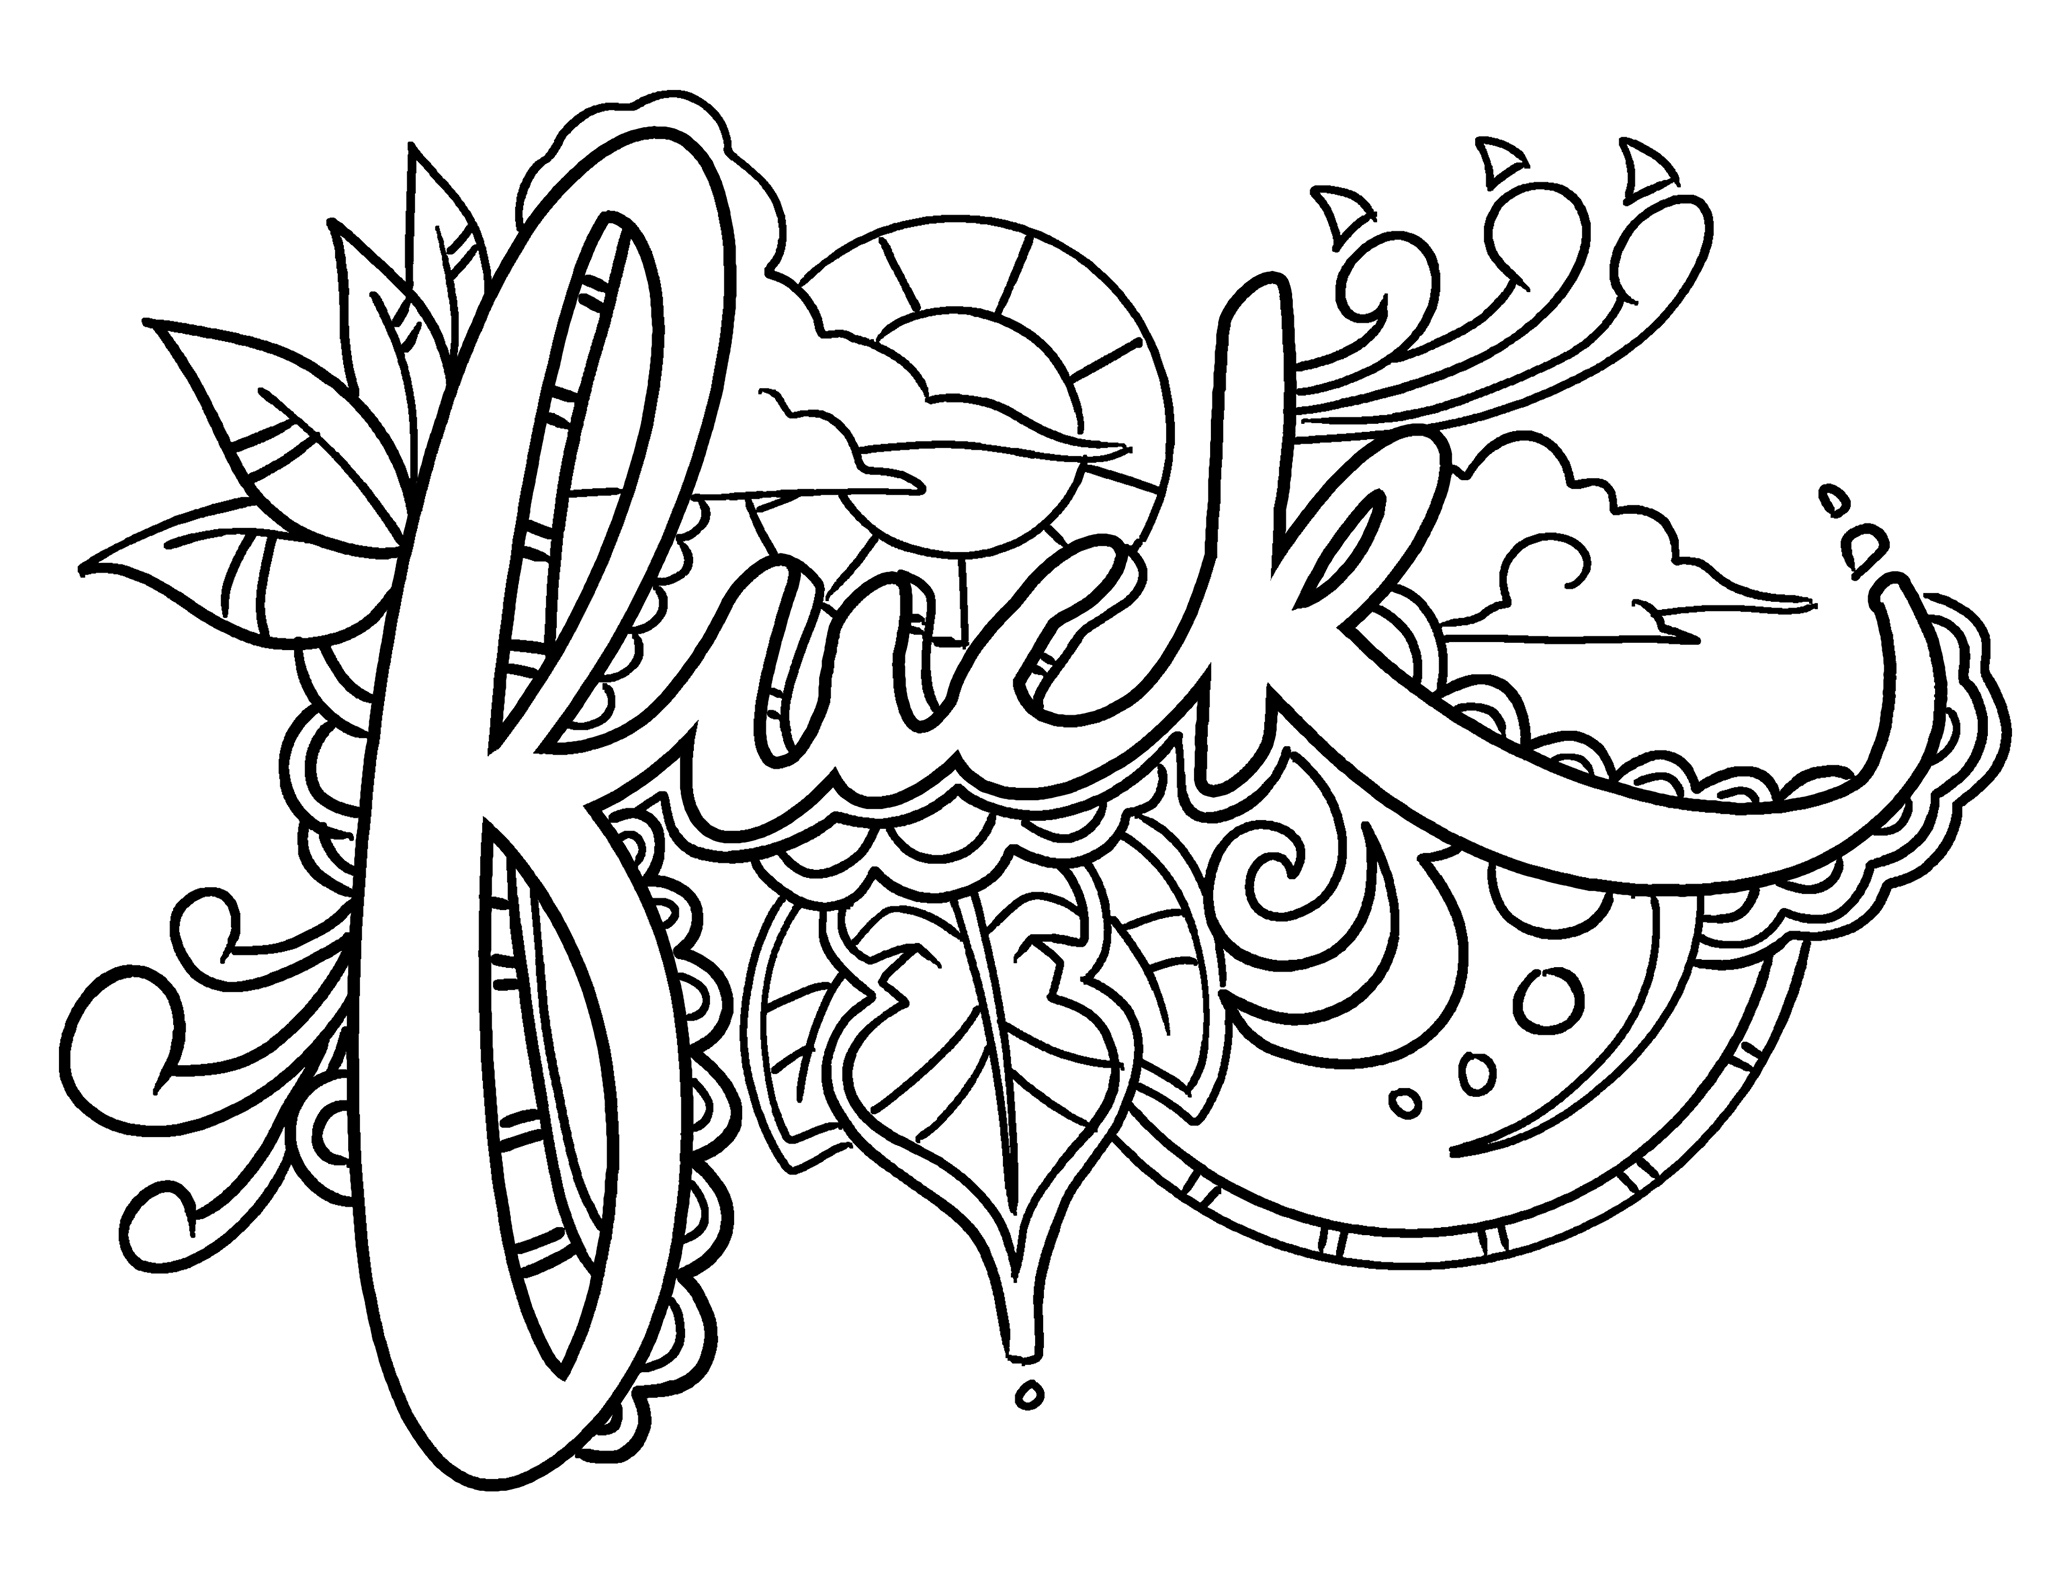 Colouring books for adults vancouver - Fuck Coloring Page By Colorful Language Posted With Permission